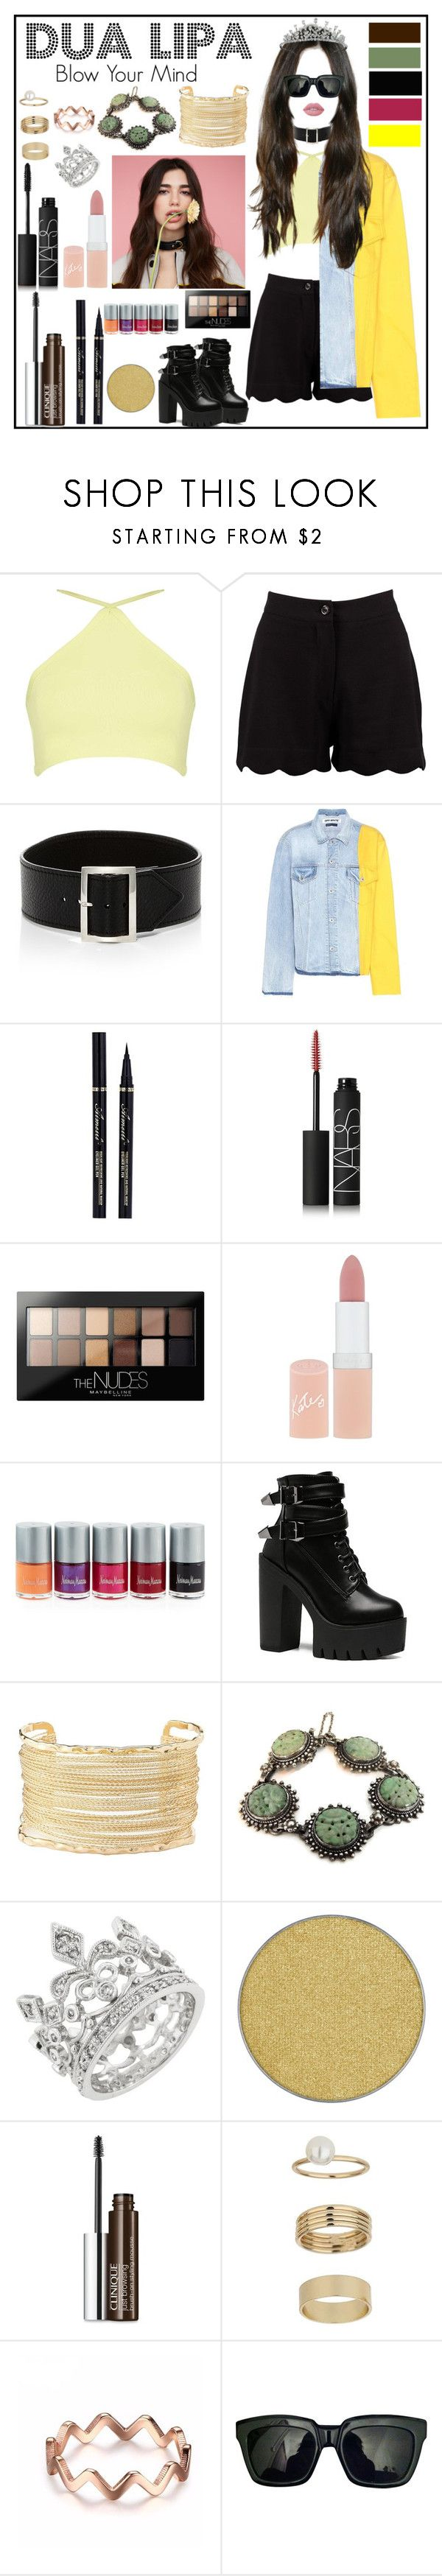 """DUA LIPA - Blow Your Mind"" by painteronion ❤ liked on Polyvore featuring Boohoo, Sophie Buhai, Off-White, NARS Cosmetics, Maybelline, Rimmel, Neiman Marcus, Charlotte Russe, Anastasia Beverly Hills and Clinique"